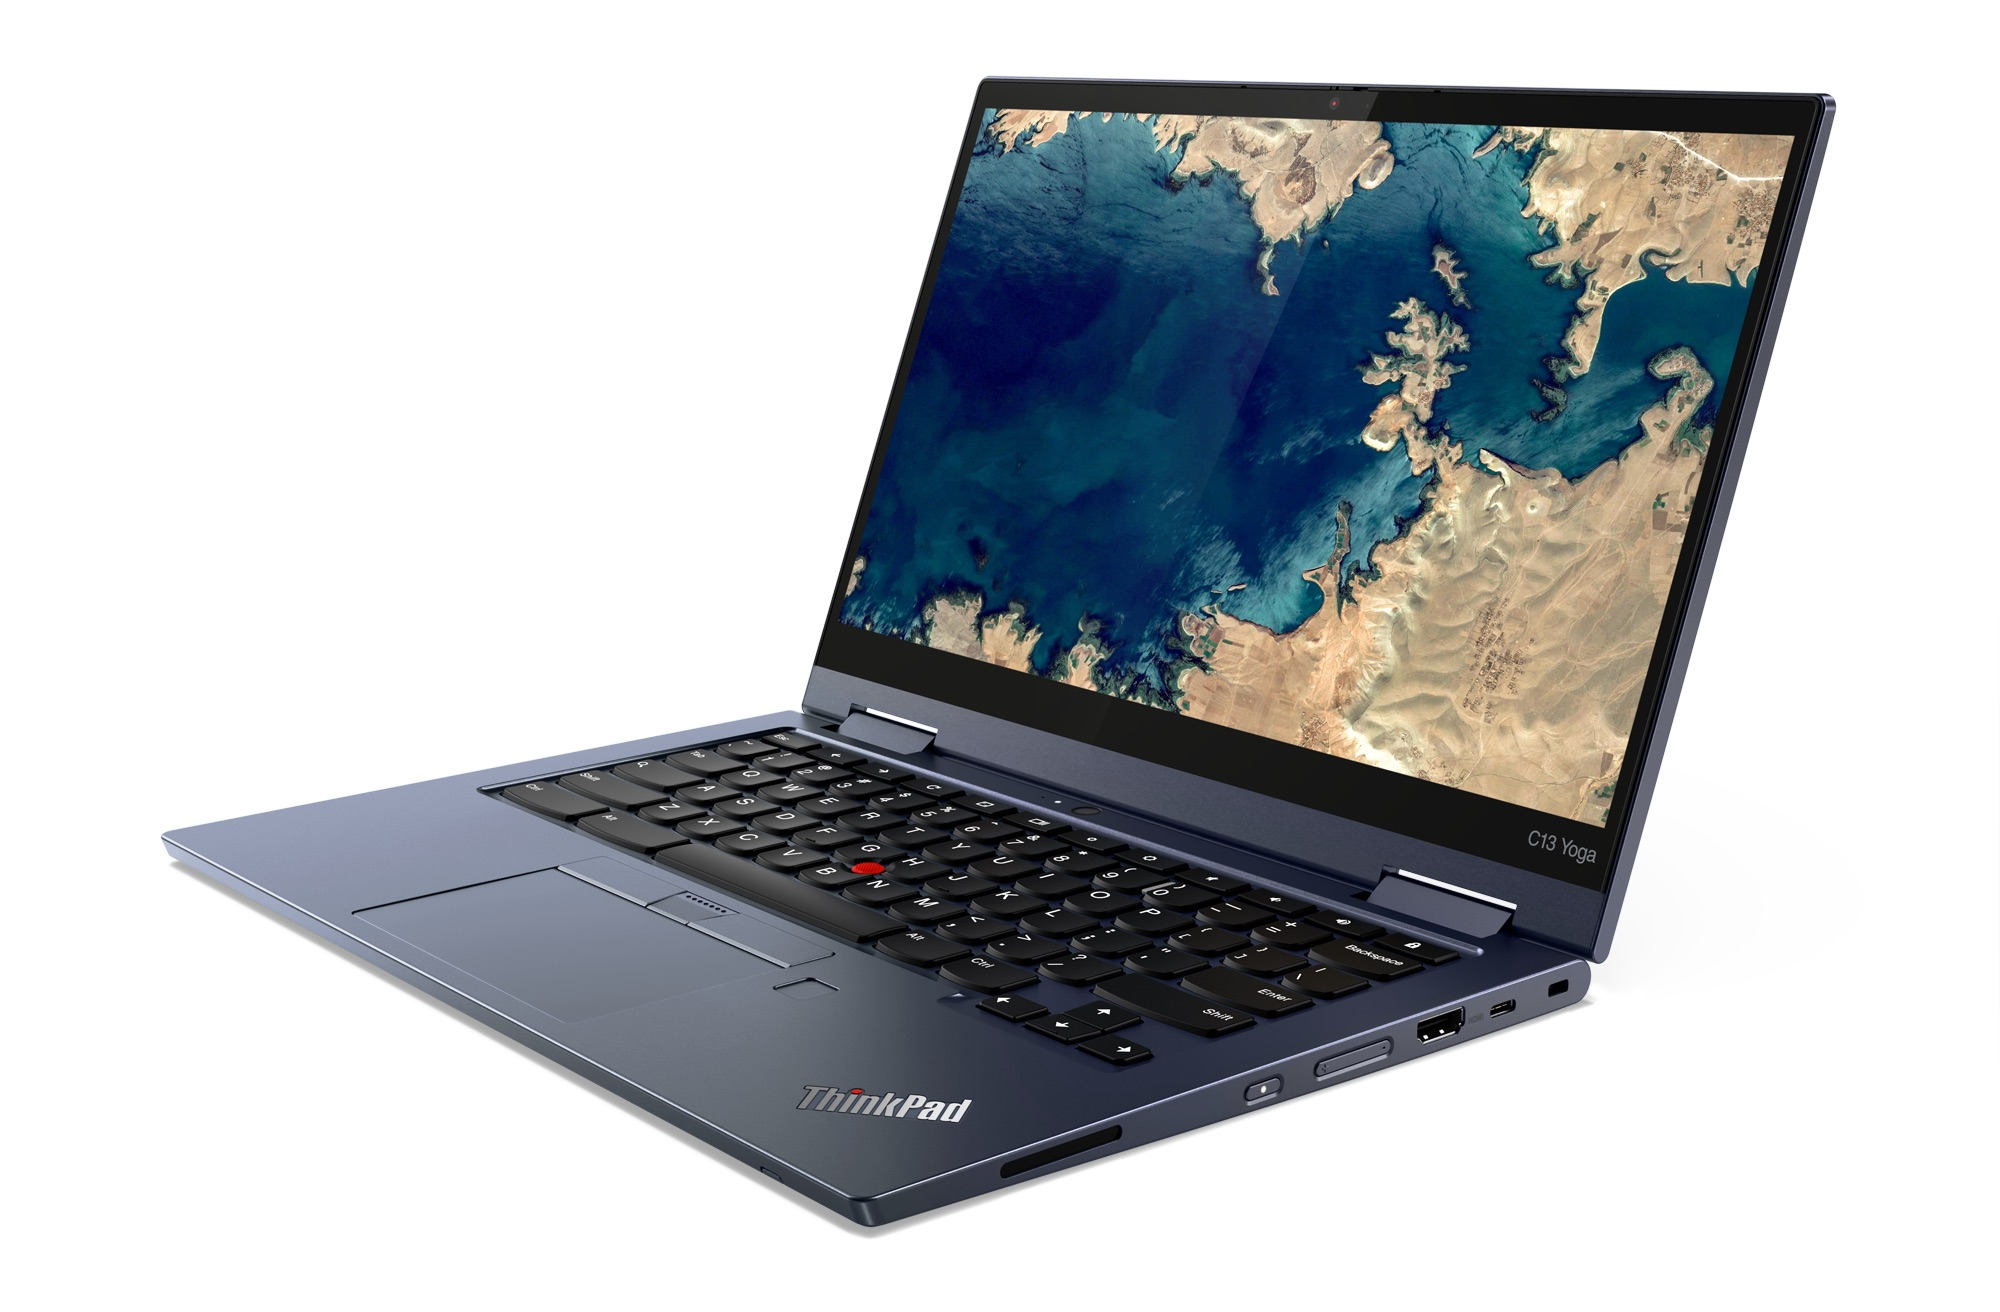 Lenovo's ThinkPad C13 Yoga is a 2-in-1 Chromebook that is perfect for WFH 11